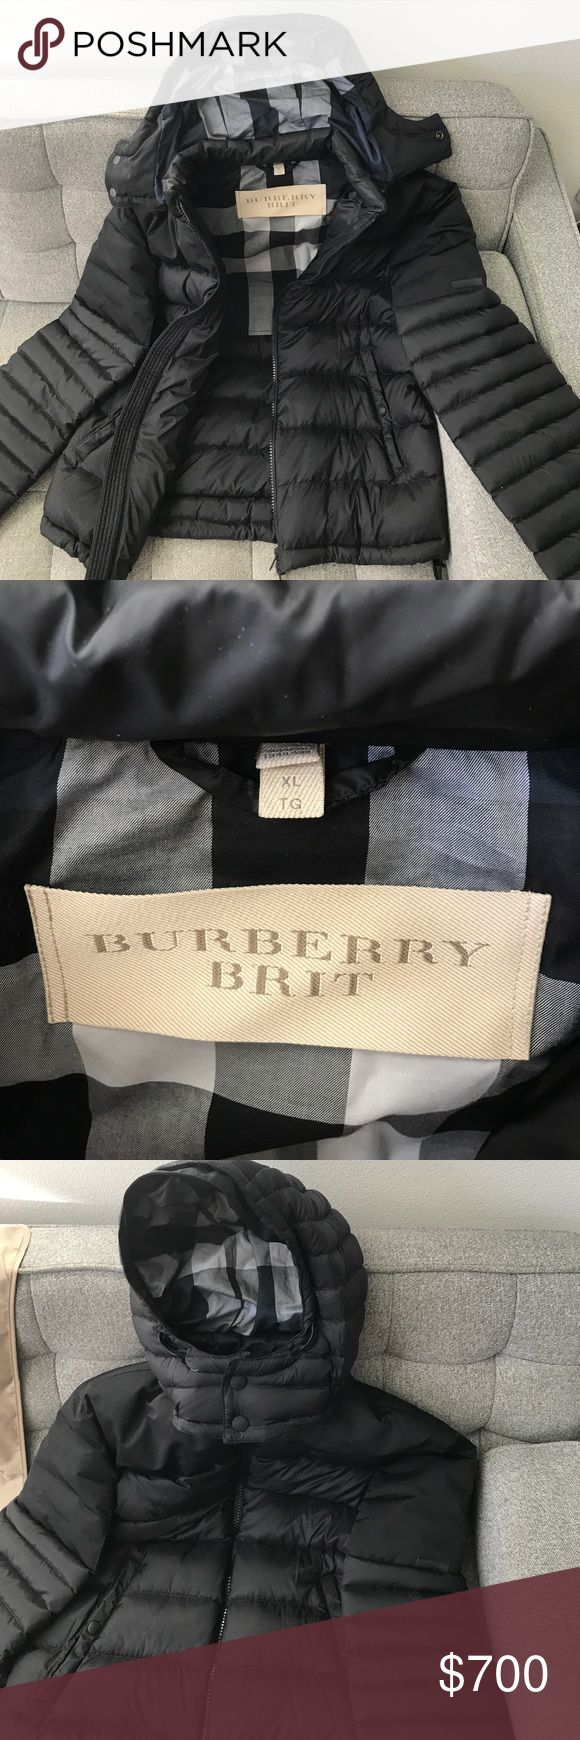 Burberry Down-filled Puffer Jacket (Men's XL) Purchased from Burberry store off of E 57th Ave in NYC Nov 2016. I have only worn this jacket twice, therefore it is like brand new. Extremely warm and stylish with a detachable hood. The coat is black with a reinforced upper material for wind, rain and snow protection. I hate to sell this amazing coat, but I live in Scottsdale, AZ and have zero need for winter coats anymore. *Note: I am also selling a Burberry wool coat purchased from the same…